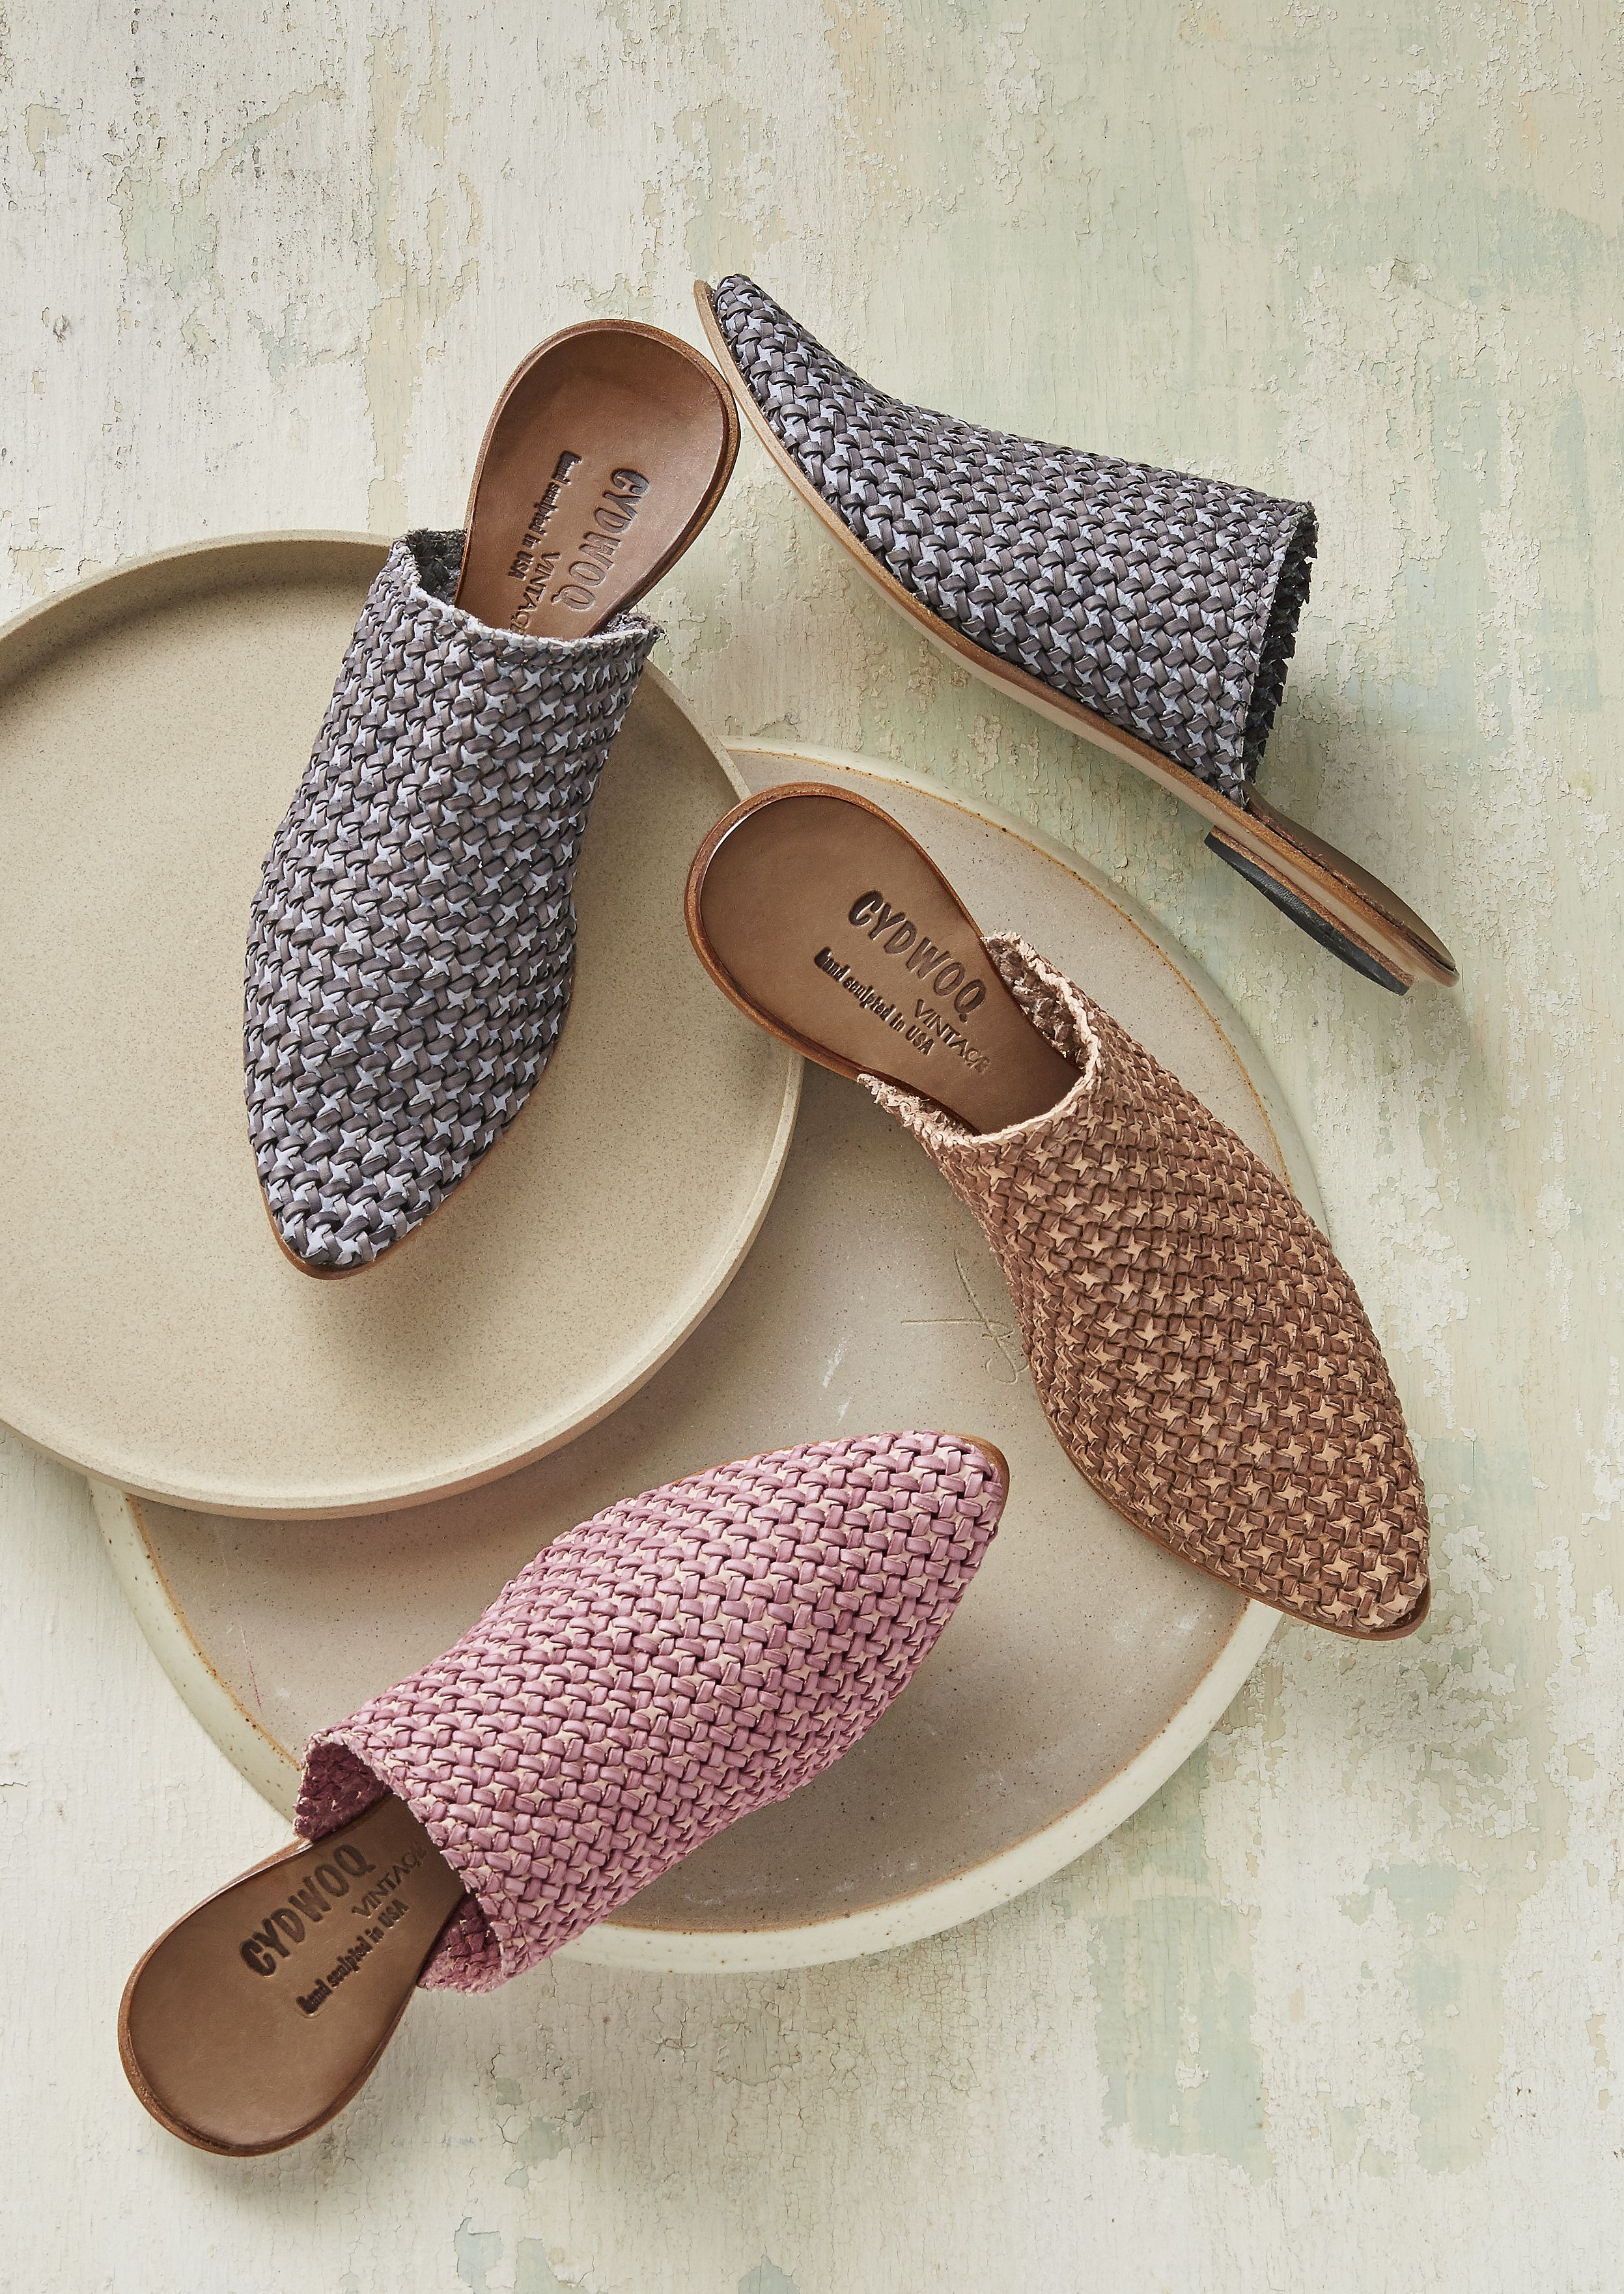 Orient Star Mules - Mules with two-tone, woven leather. By CYDWOQ.